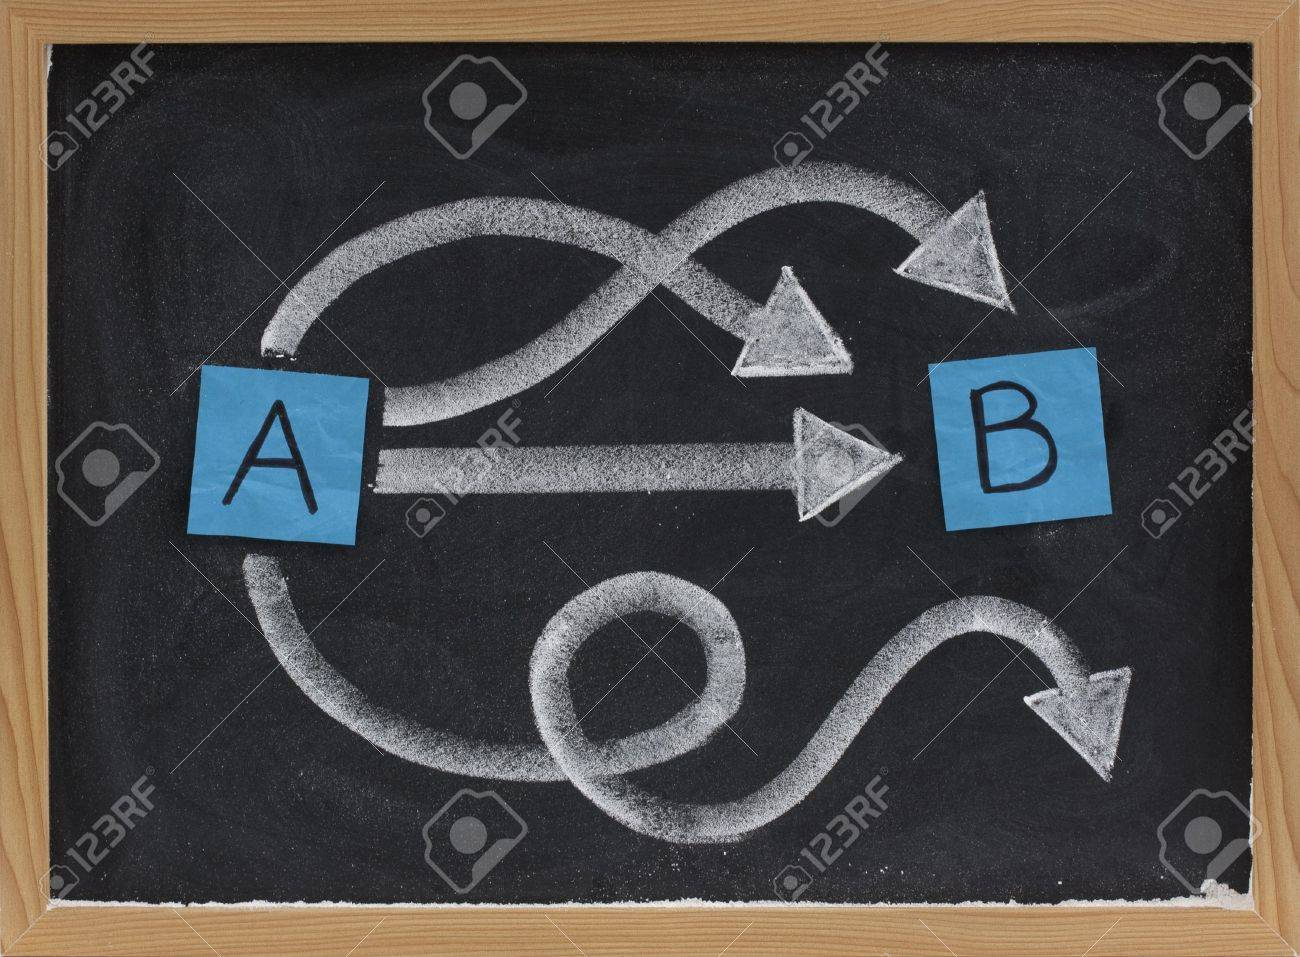 successful and unsuccessful choices, pathways or solutions concept presented with sticky notes, white chalk on blackboard Stock Photo - 5545665